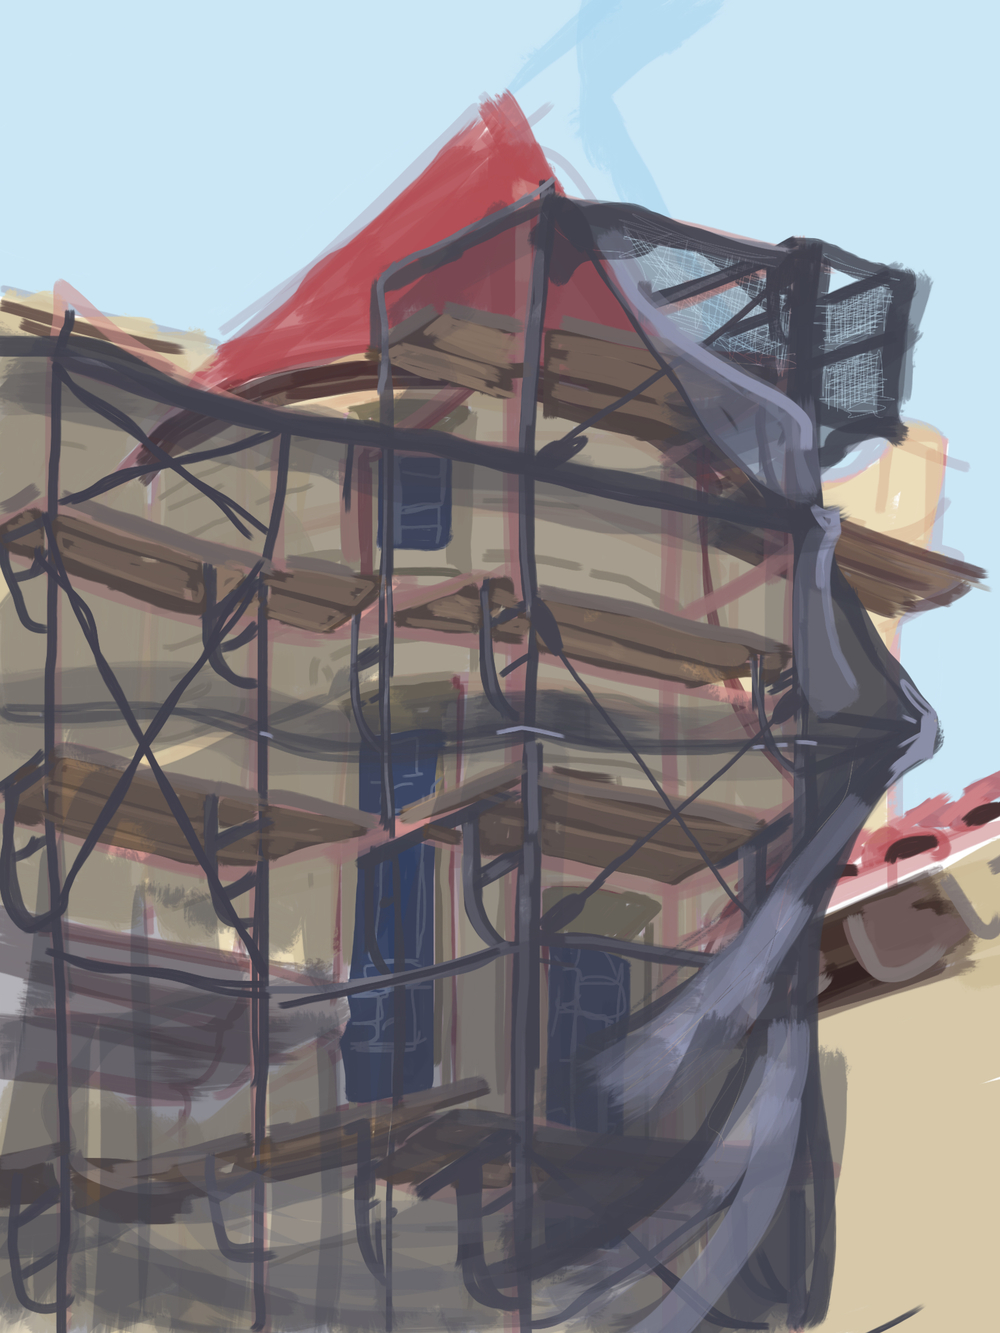 Scaffolds at the Stanford Memorial Church. Digital plain-air drawing.